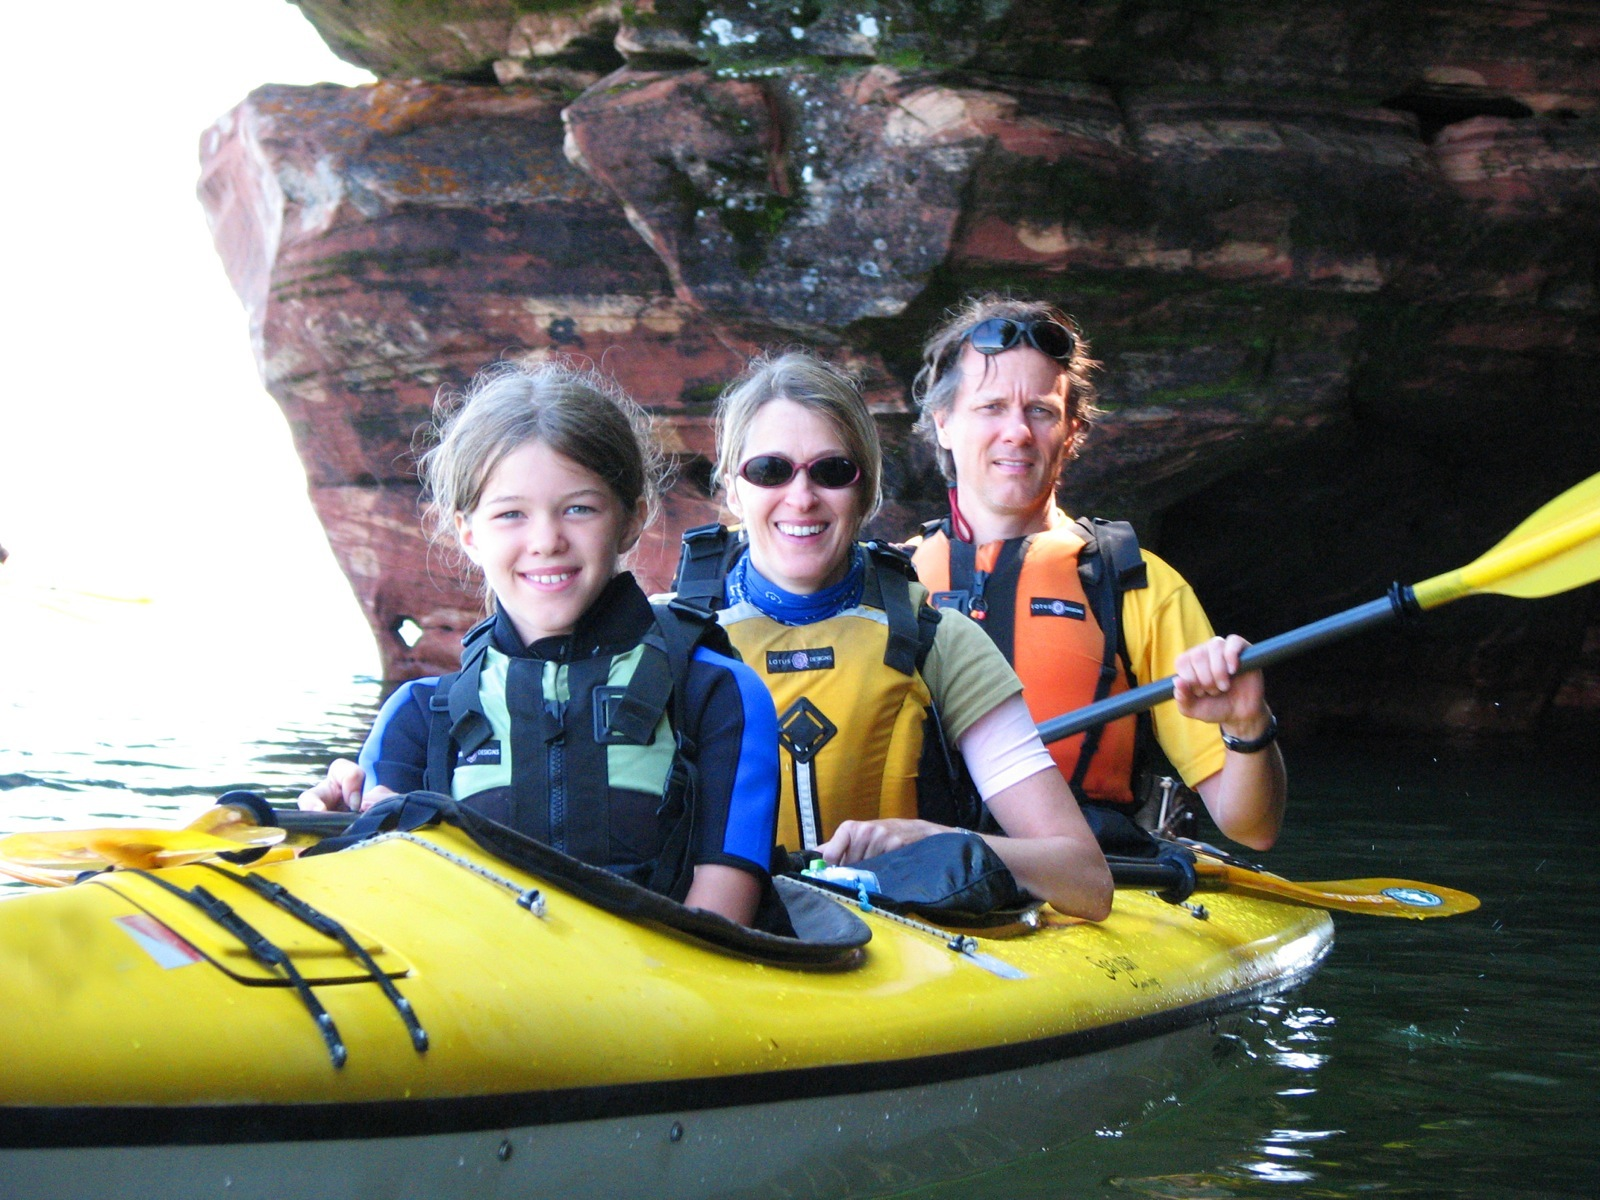 Parents and daughter explore the Mawikwe Bay sea caves in a yellow kayak.